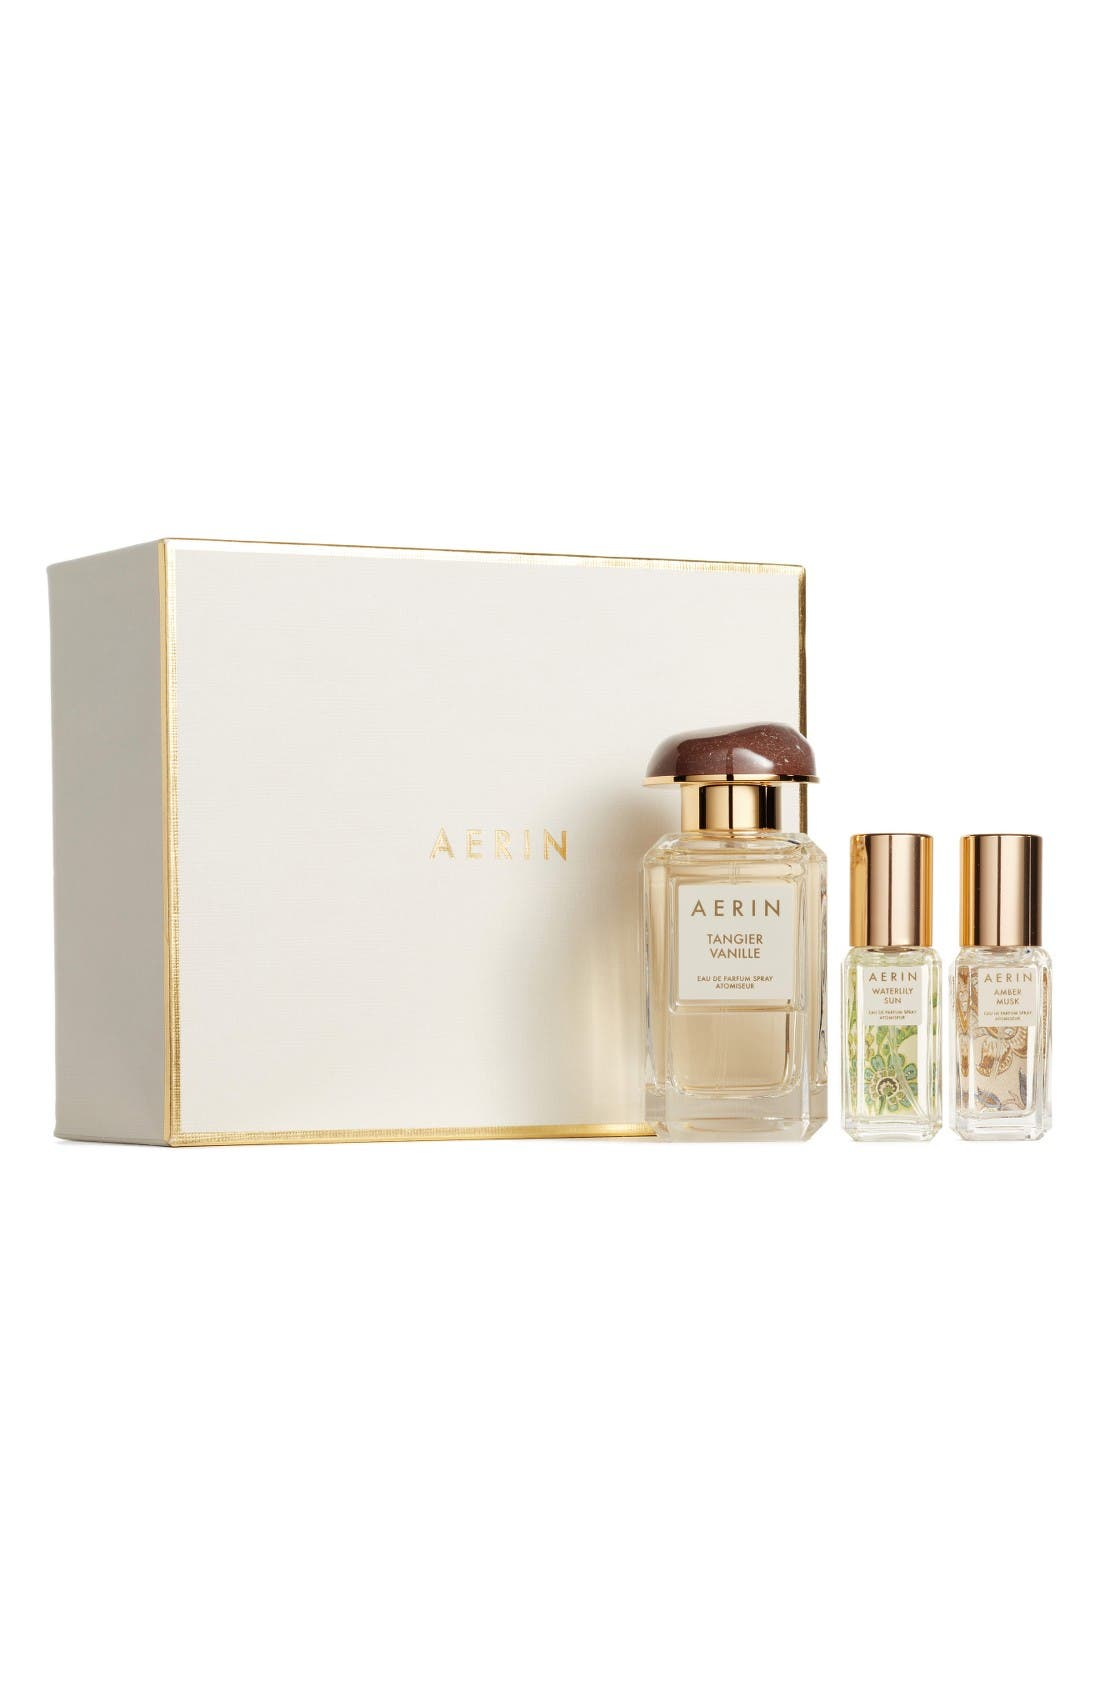 AERIN Beauty Tangier Vanille Fragrance Set (Limited Edition) (Nordstrom Exclusive) ($155 Value)